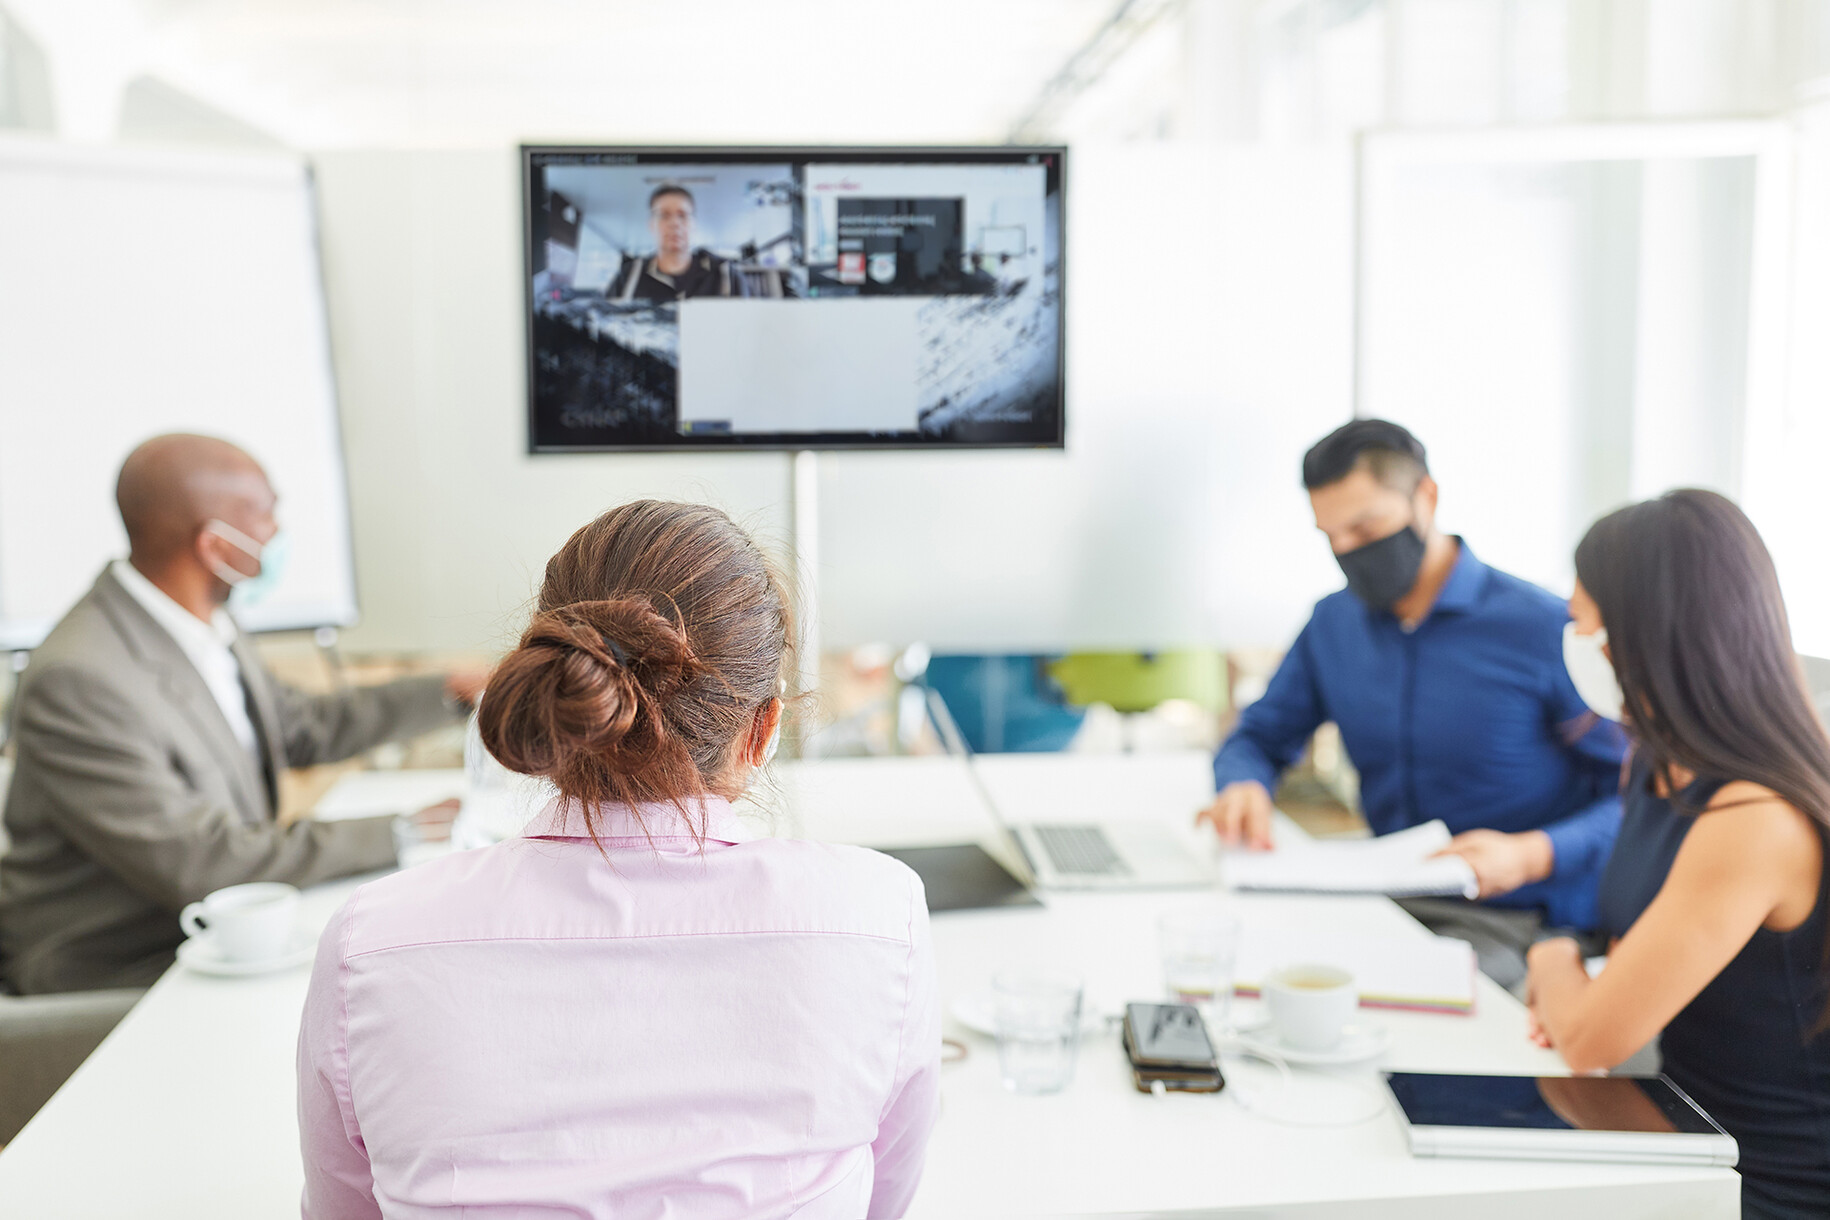 A consistent meeting experience for both in-person and remote attendees is essential.